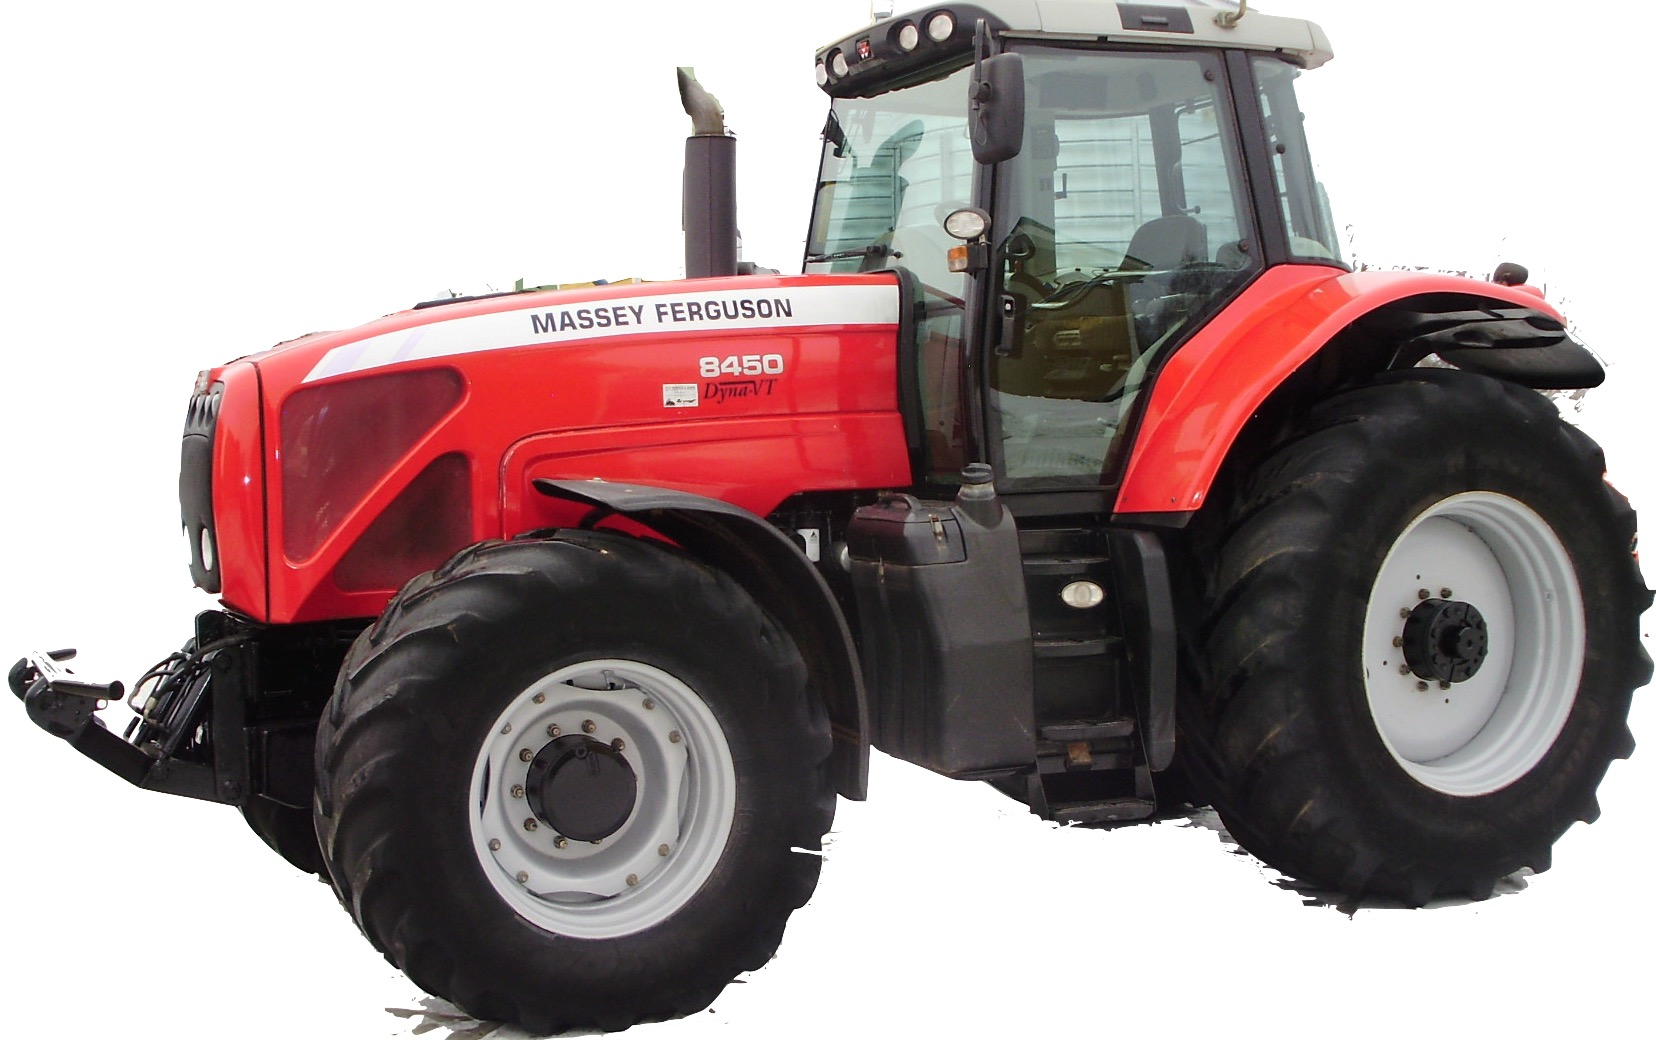 Pages from AGCO-Massey-Ferguson Tractor Series 8400 (models  8450-8460-8470-8480) Workshop Service Manual (Section 3-12)